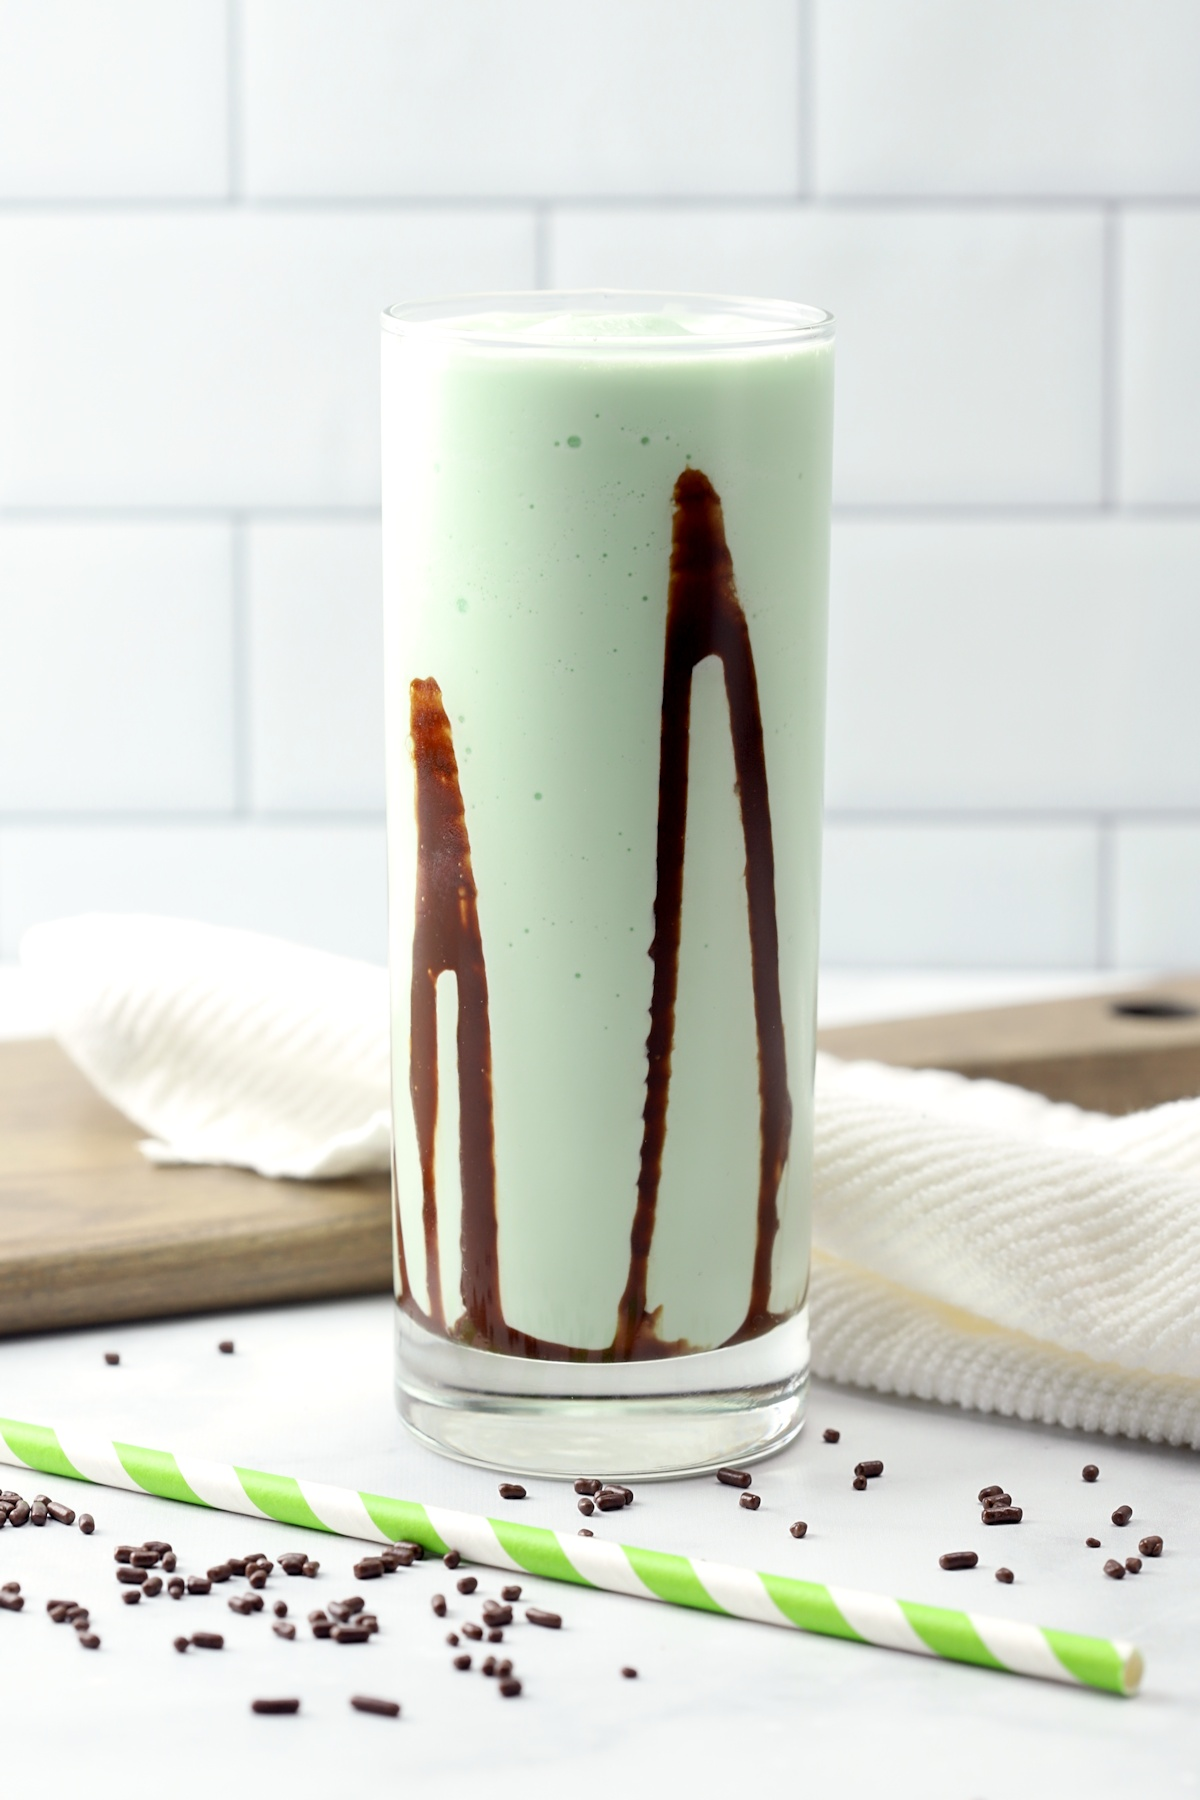 Frozen green alcoholic drink with swirls of chocolate syrup.